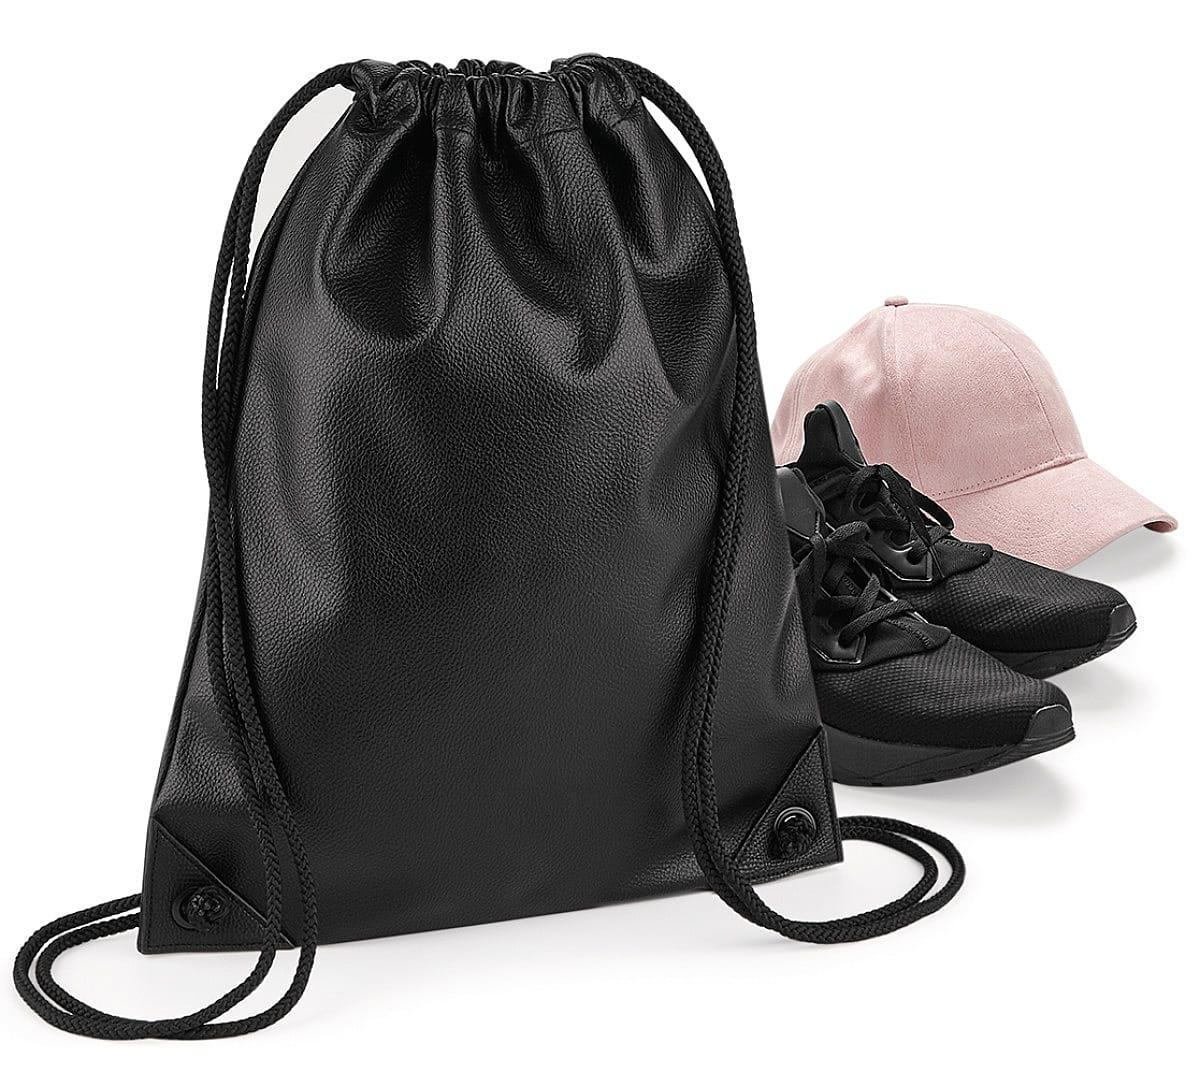 Bagbase Faux Leather Gymsac in Black (Product Code: BG250)